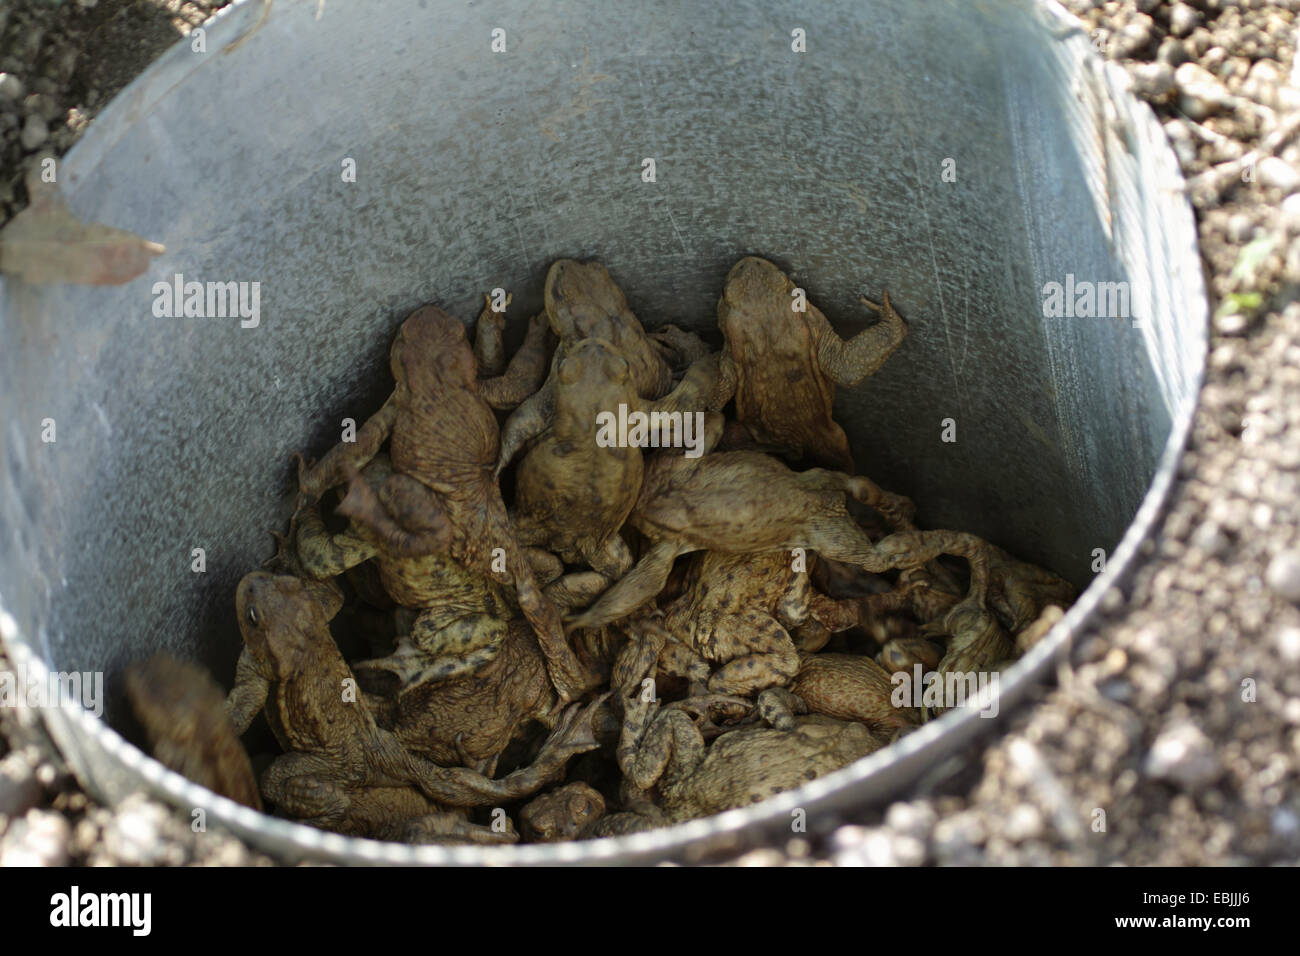 European common toad (Bufo bufo), common toads in a bucket, Germany, Baden-Wuerttemberg - Stock Image